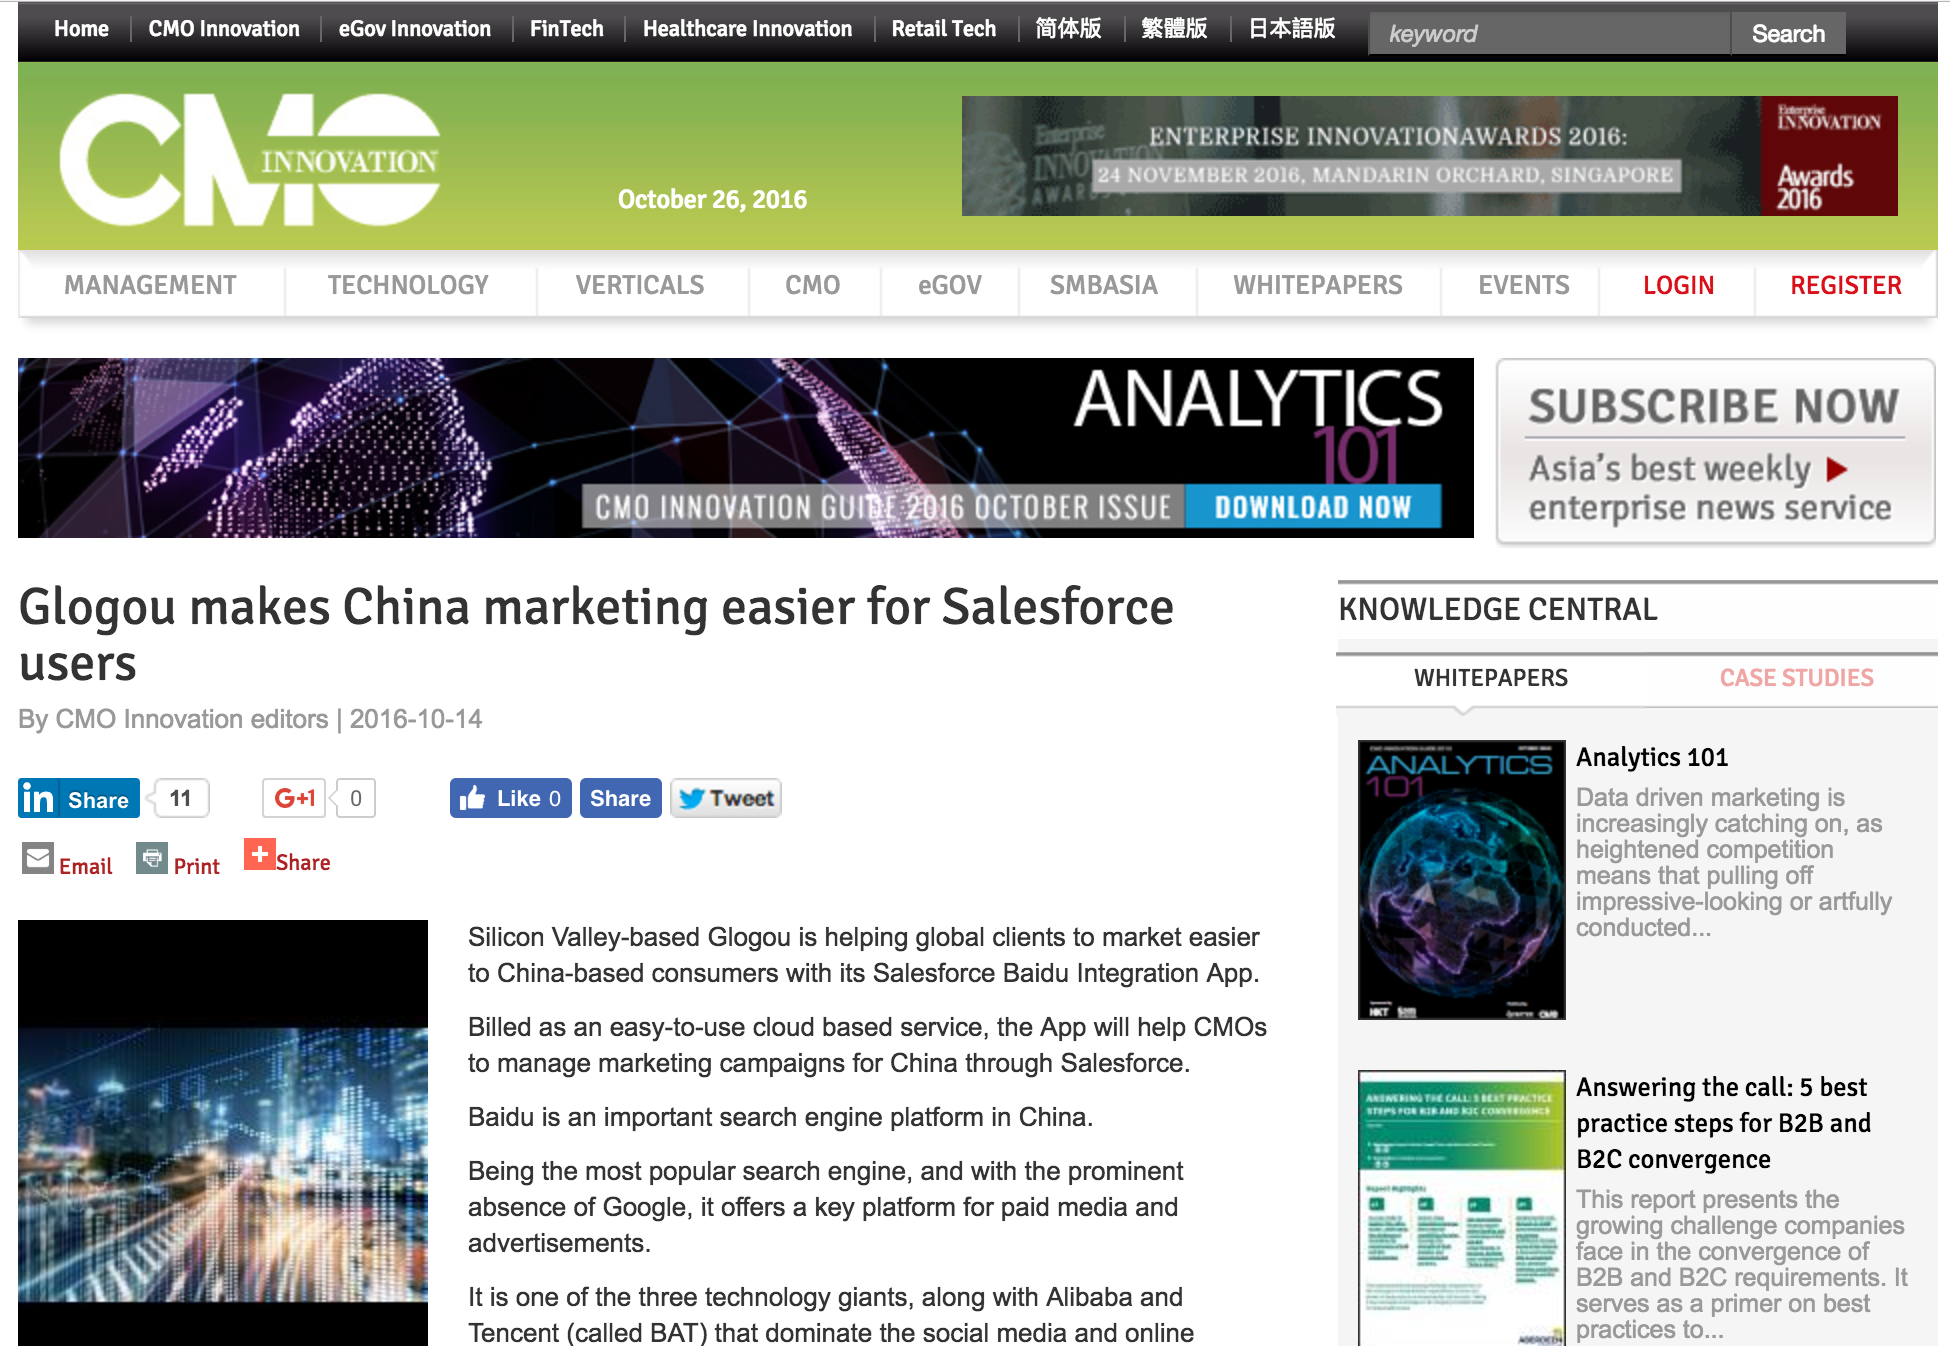 Glogou Launches Cloud Services to Integrate China Marketing Campaigns With Salesforce